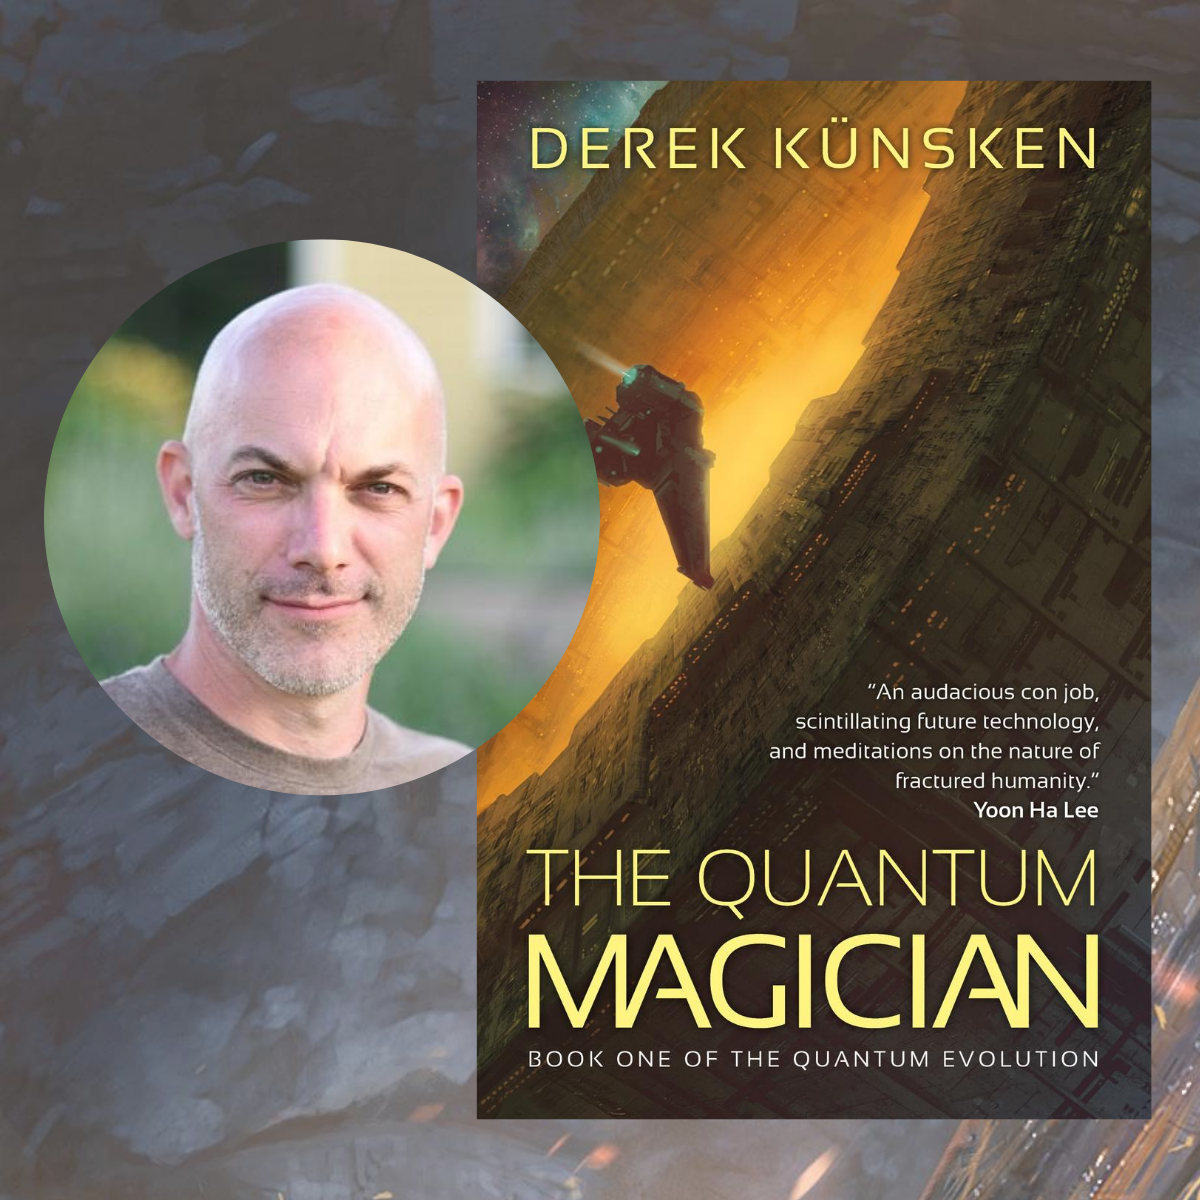 Two more books confirmed for the Quantum Evolution series